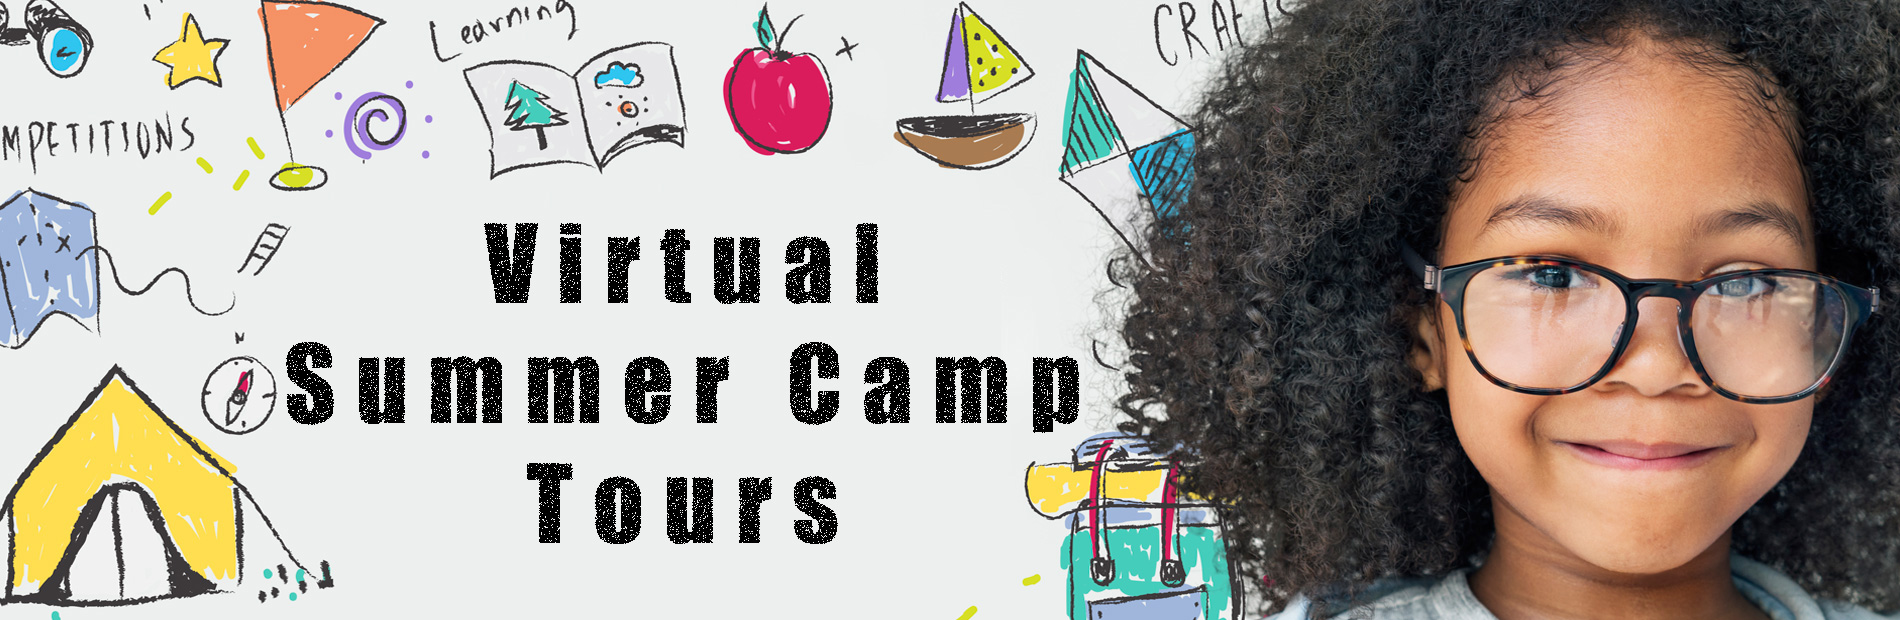 Virtual Summer Camp Tours